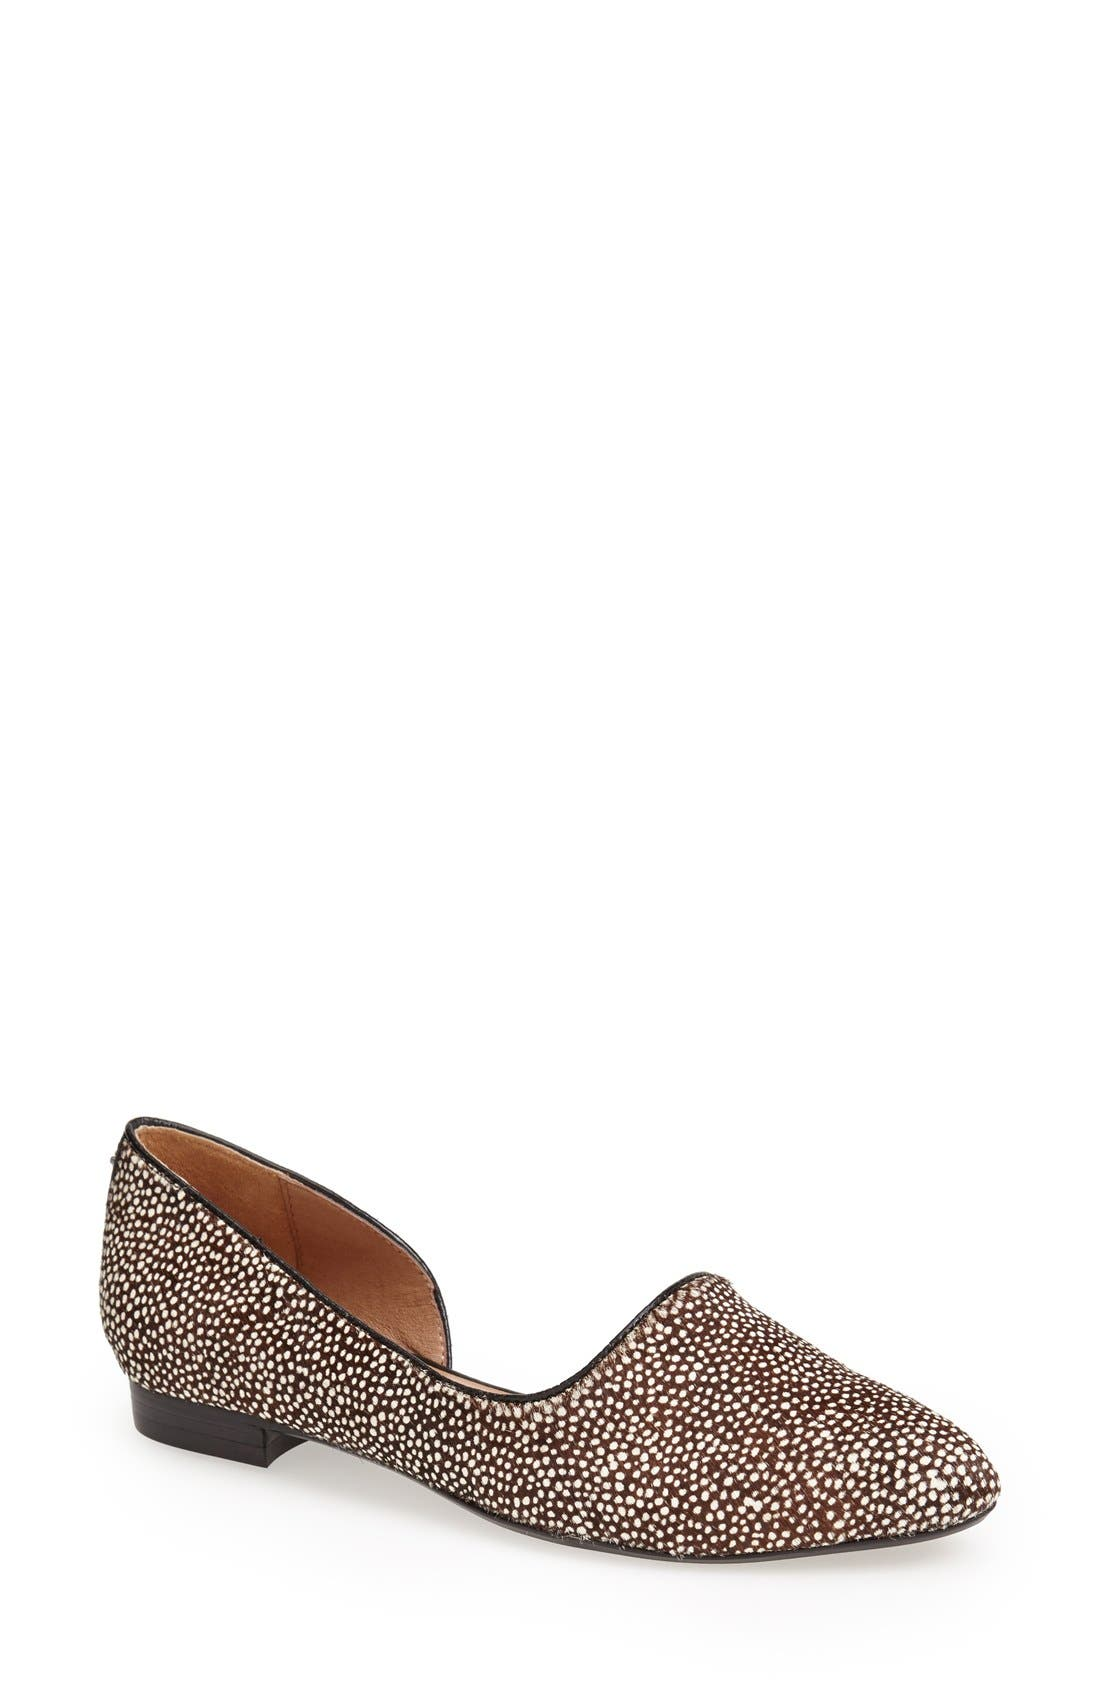 Alternate Image 1 Selected - Nina Originals 'Quip' Calf Hair Pointed Toe Flat (Women)